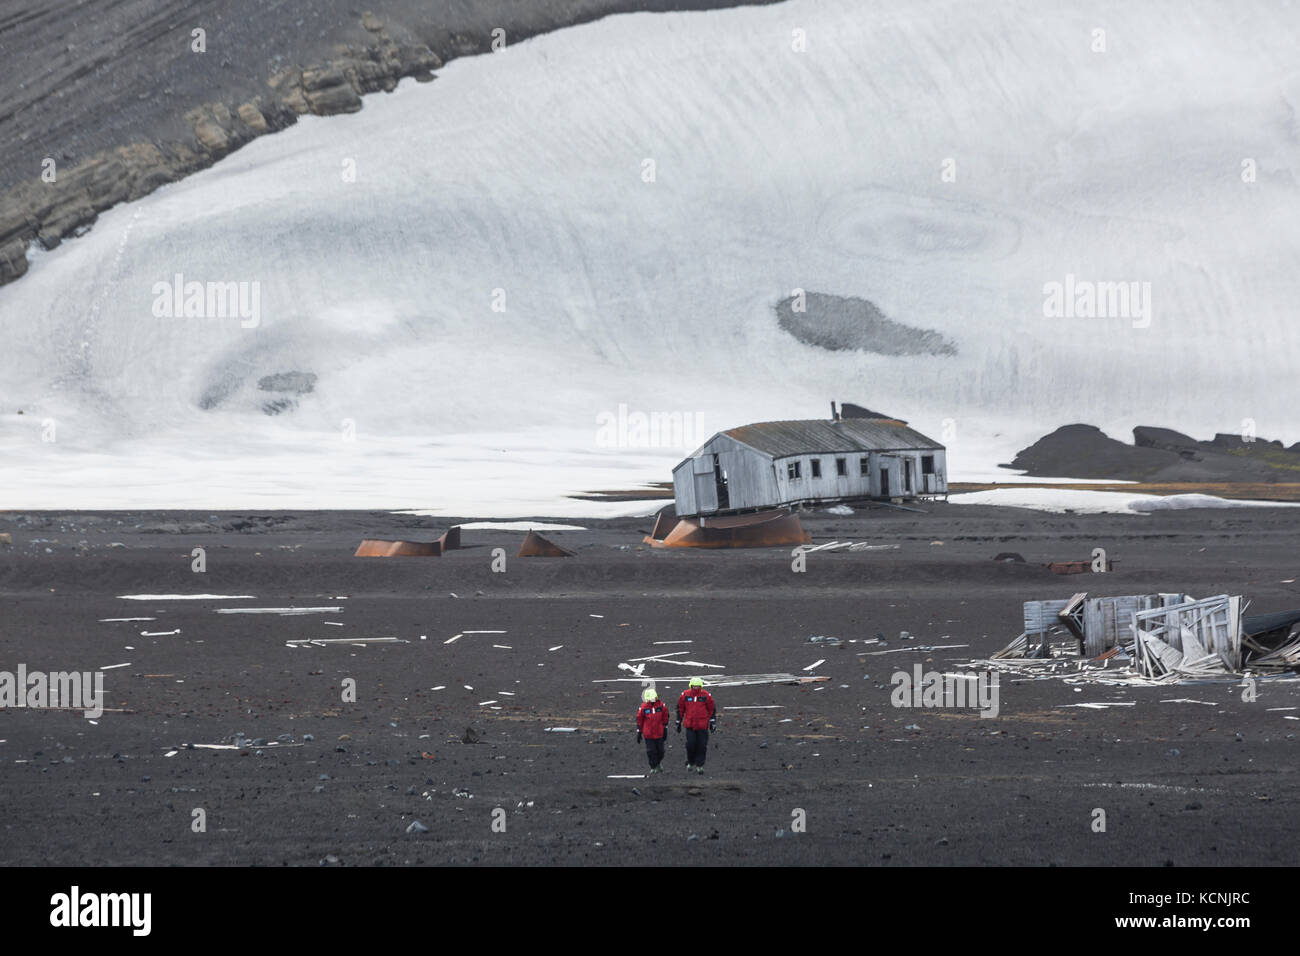 Two adventure tourists walk along the volcanic landscape and deteriating buildings of Deception Island,  South Shetland - Stock Image